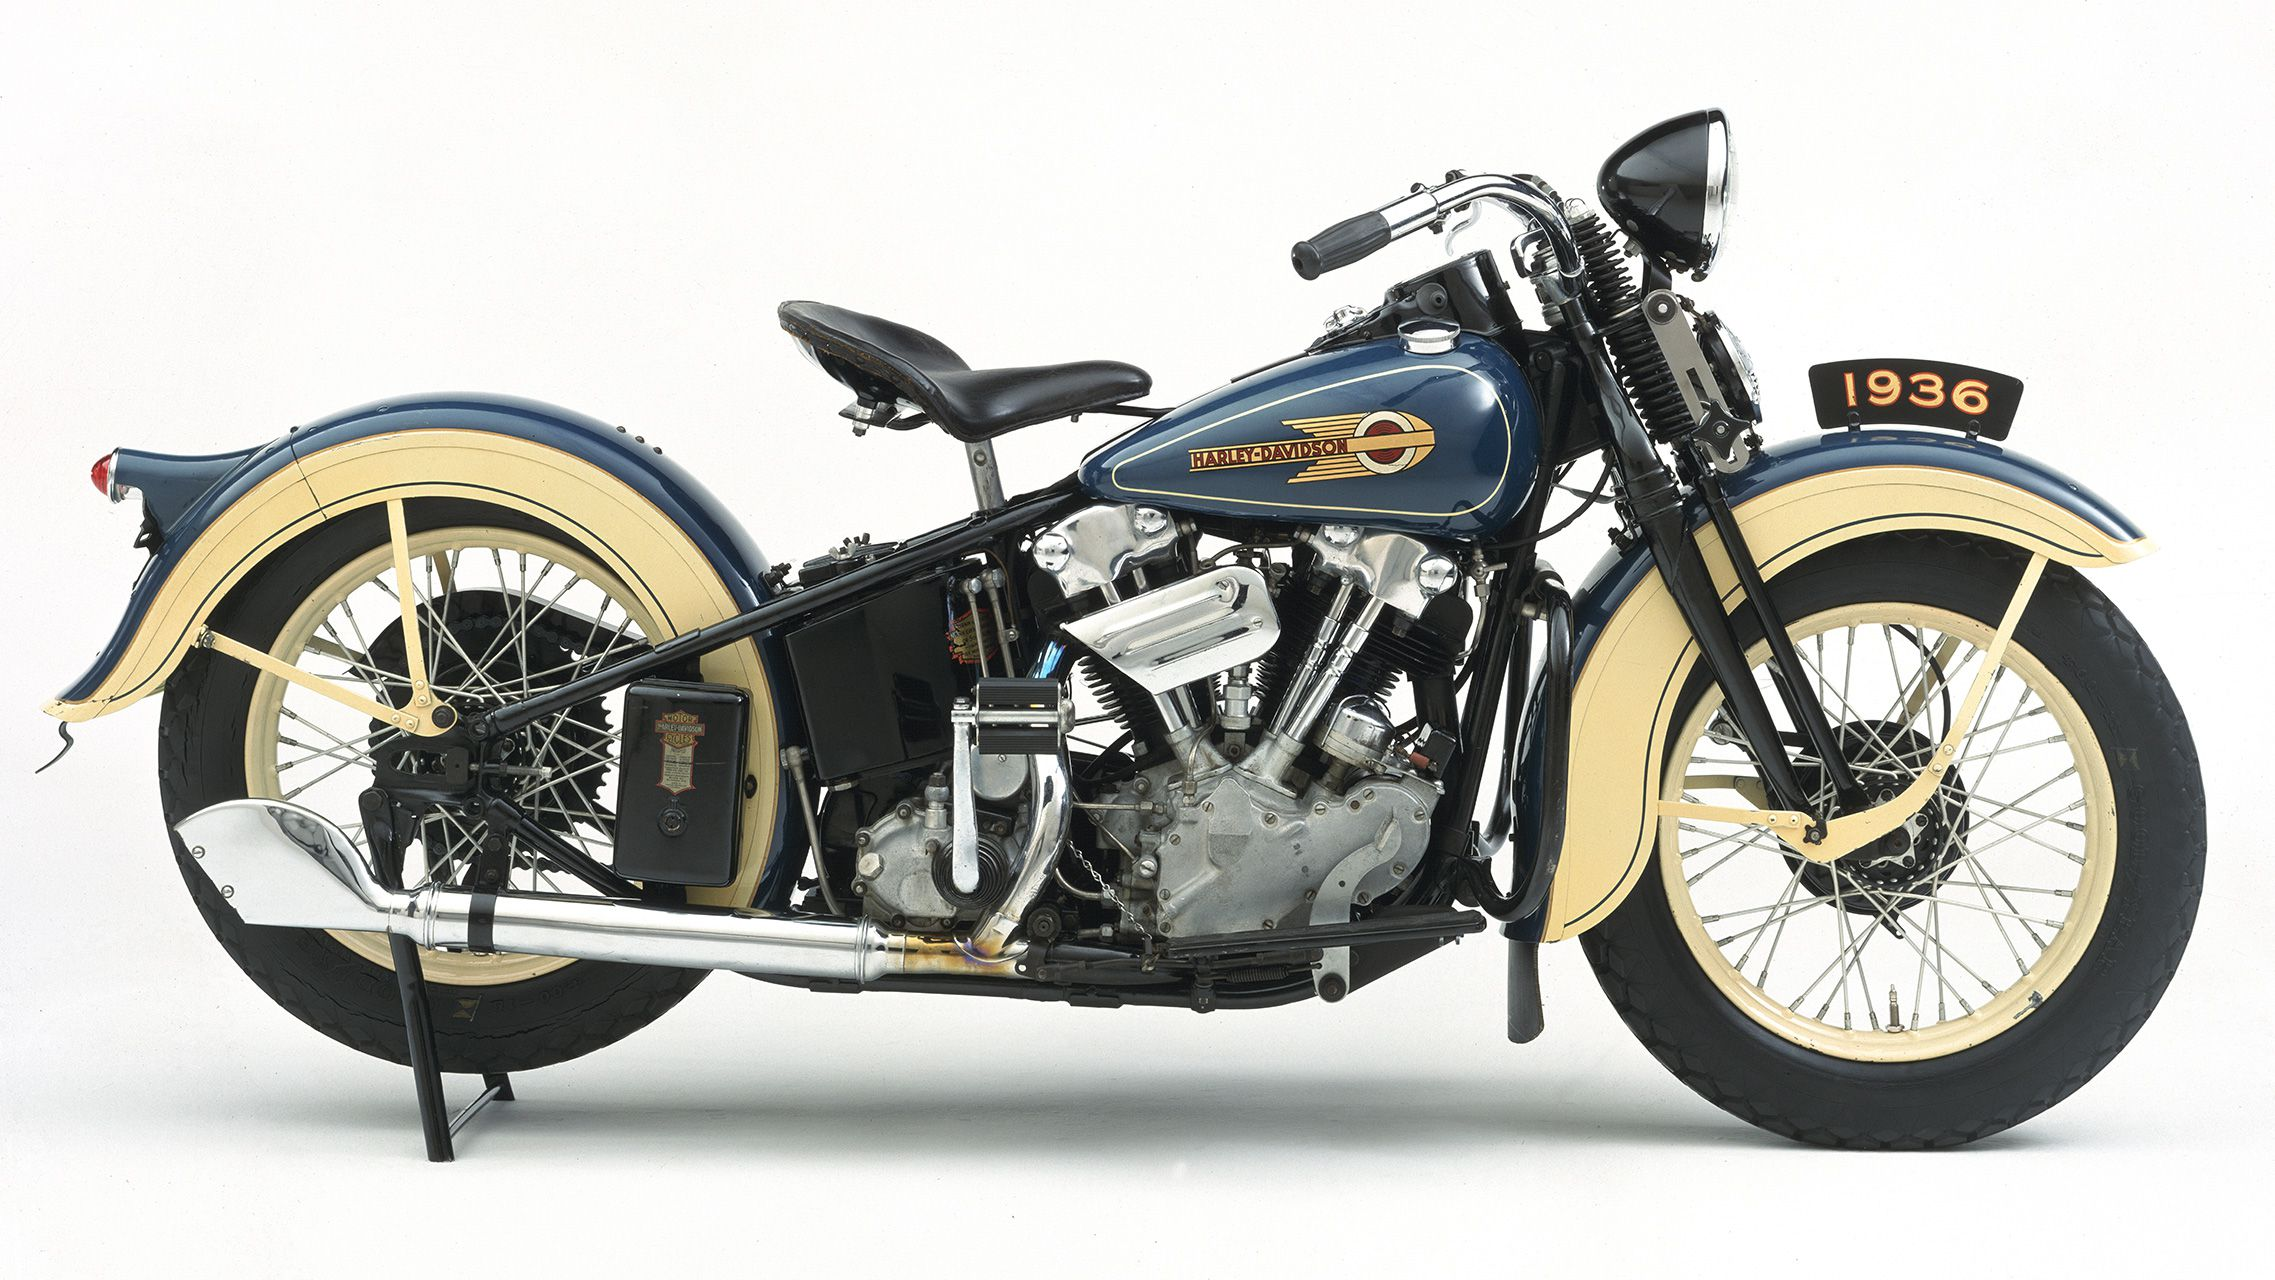 Harley Davidson Knucklehead V Twin Motorcycles History Of The Big